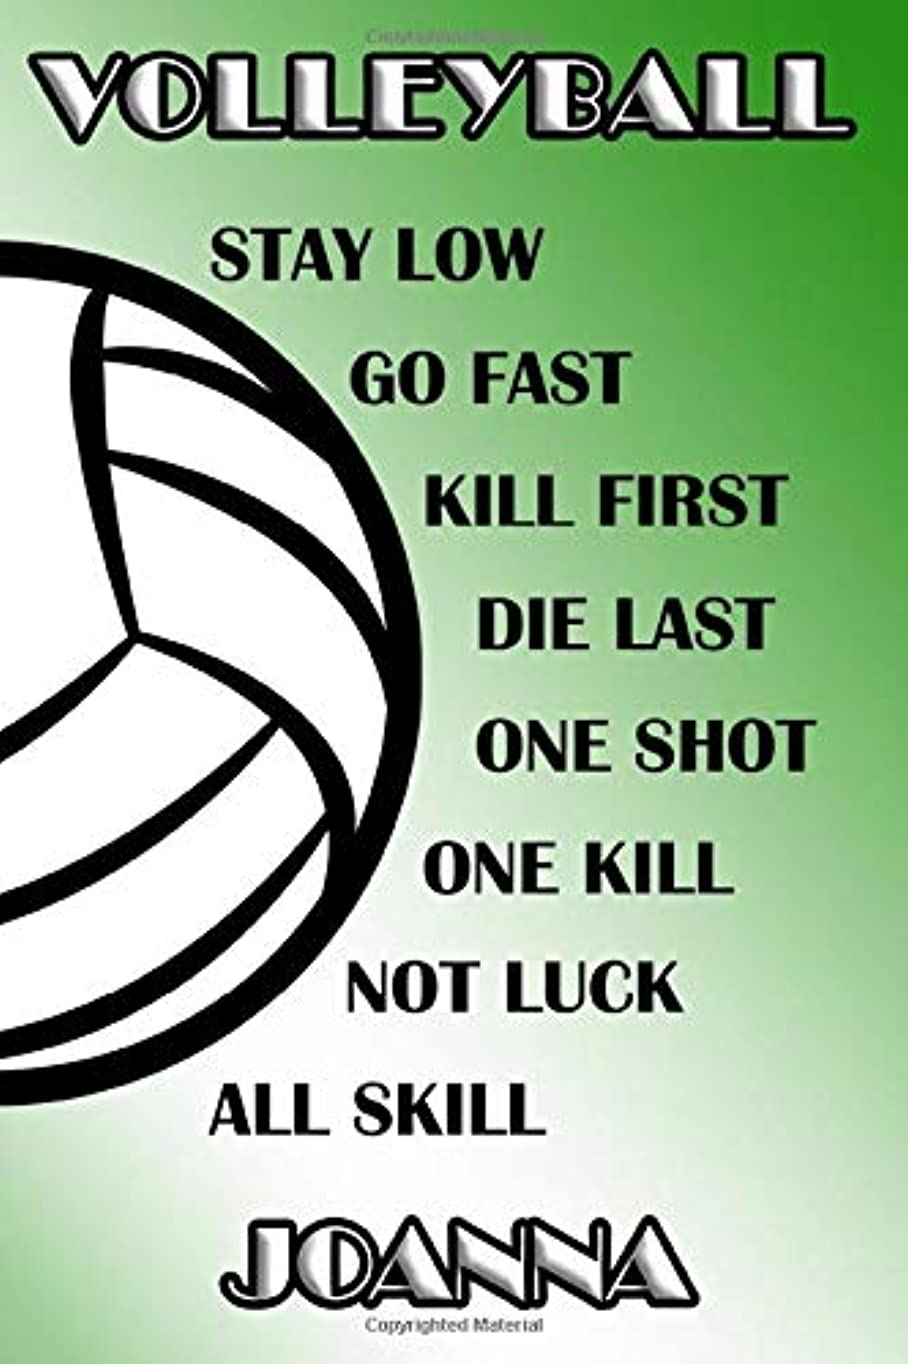 トーク高尚な宗教的なVolleyball Stay Low Go Fast Kill First Die Last One Shot One Kill Not Luck All Skill Joanna: College Ruled | Composition Book | Green and White School Colors